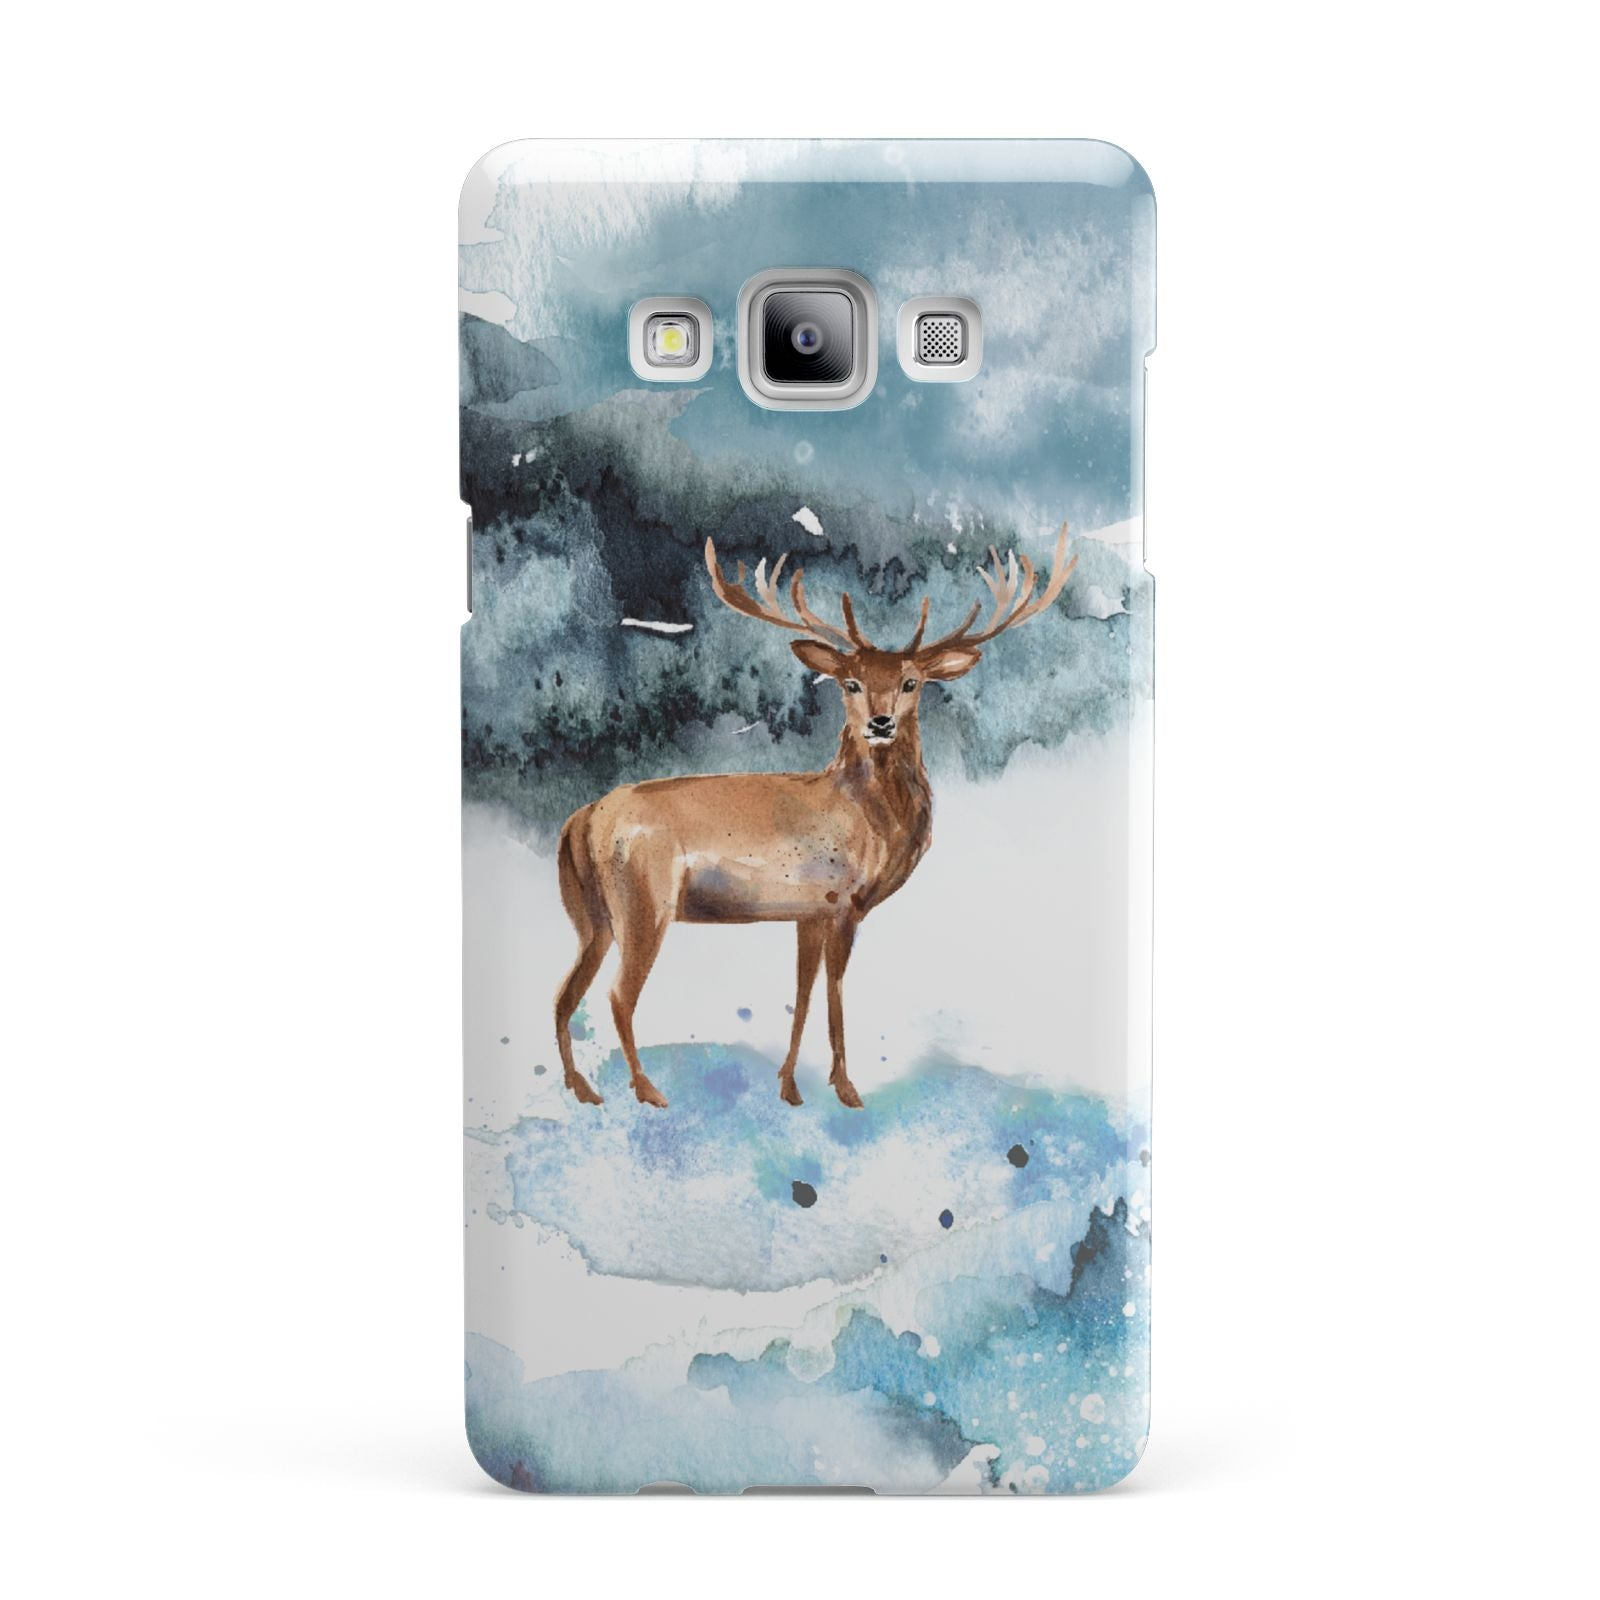 Christmas Winter Stag Samsung Galaxy A7 2015 Case